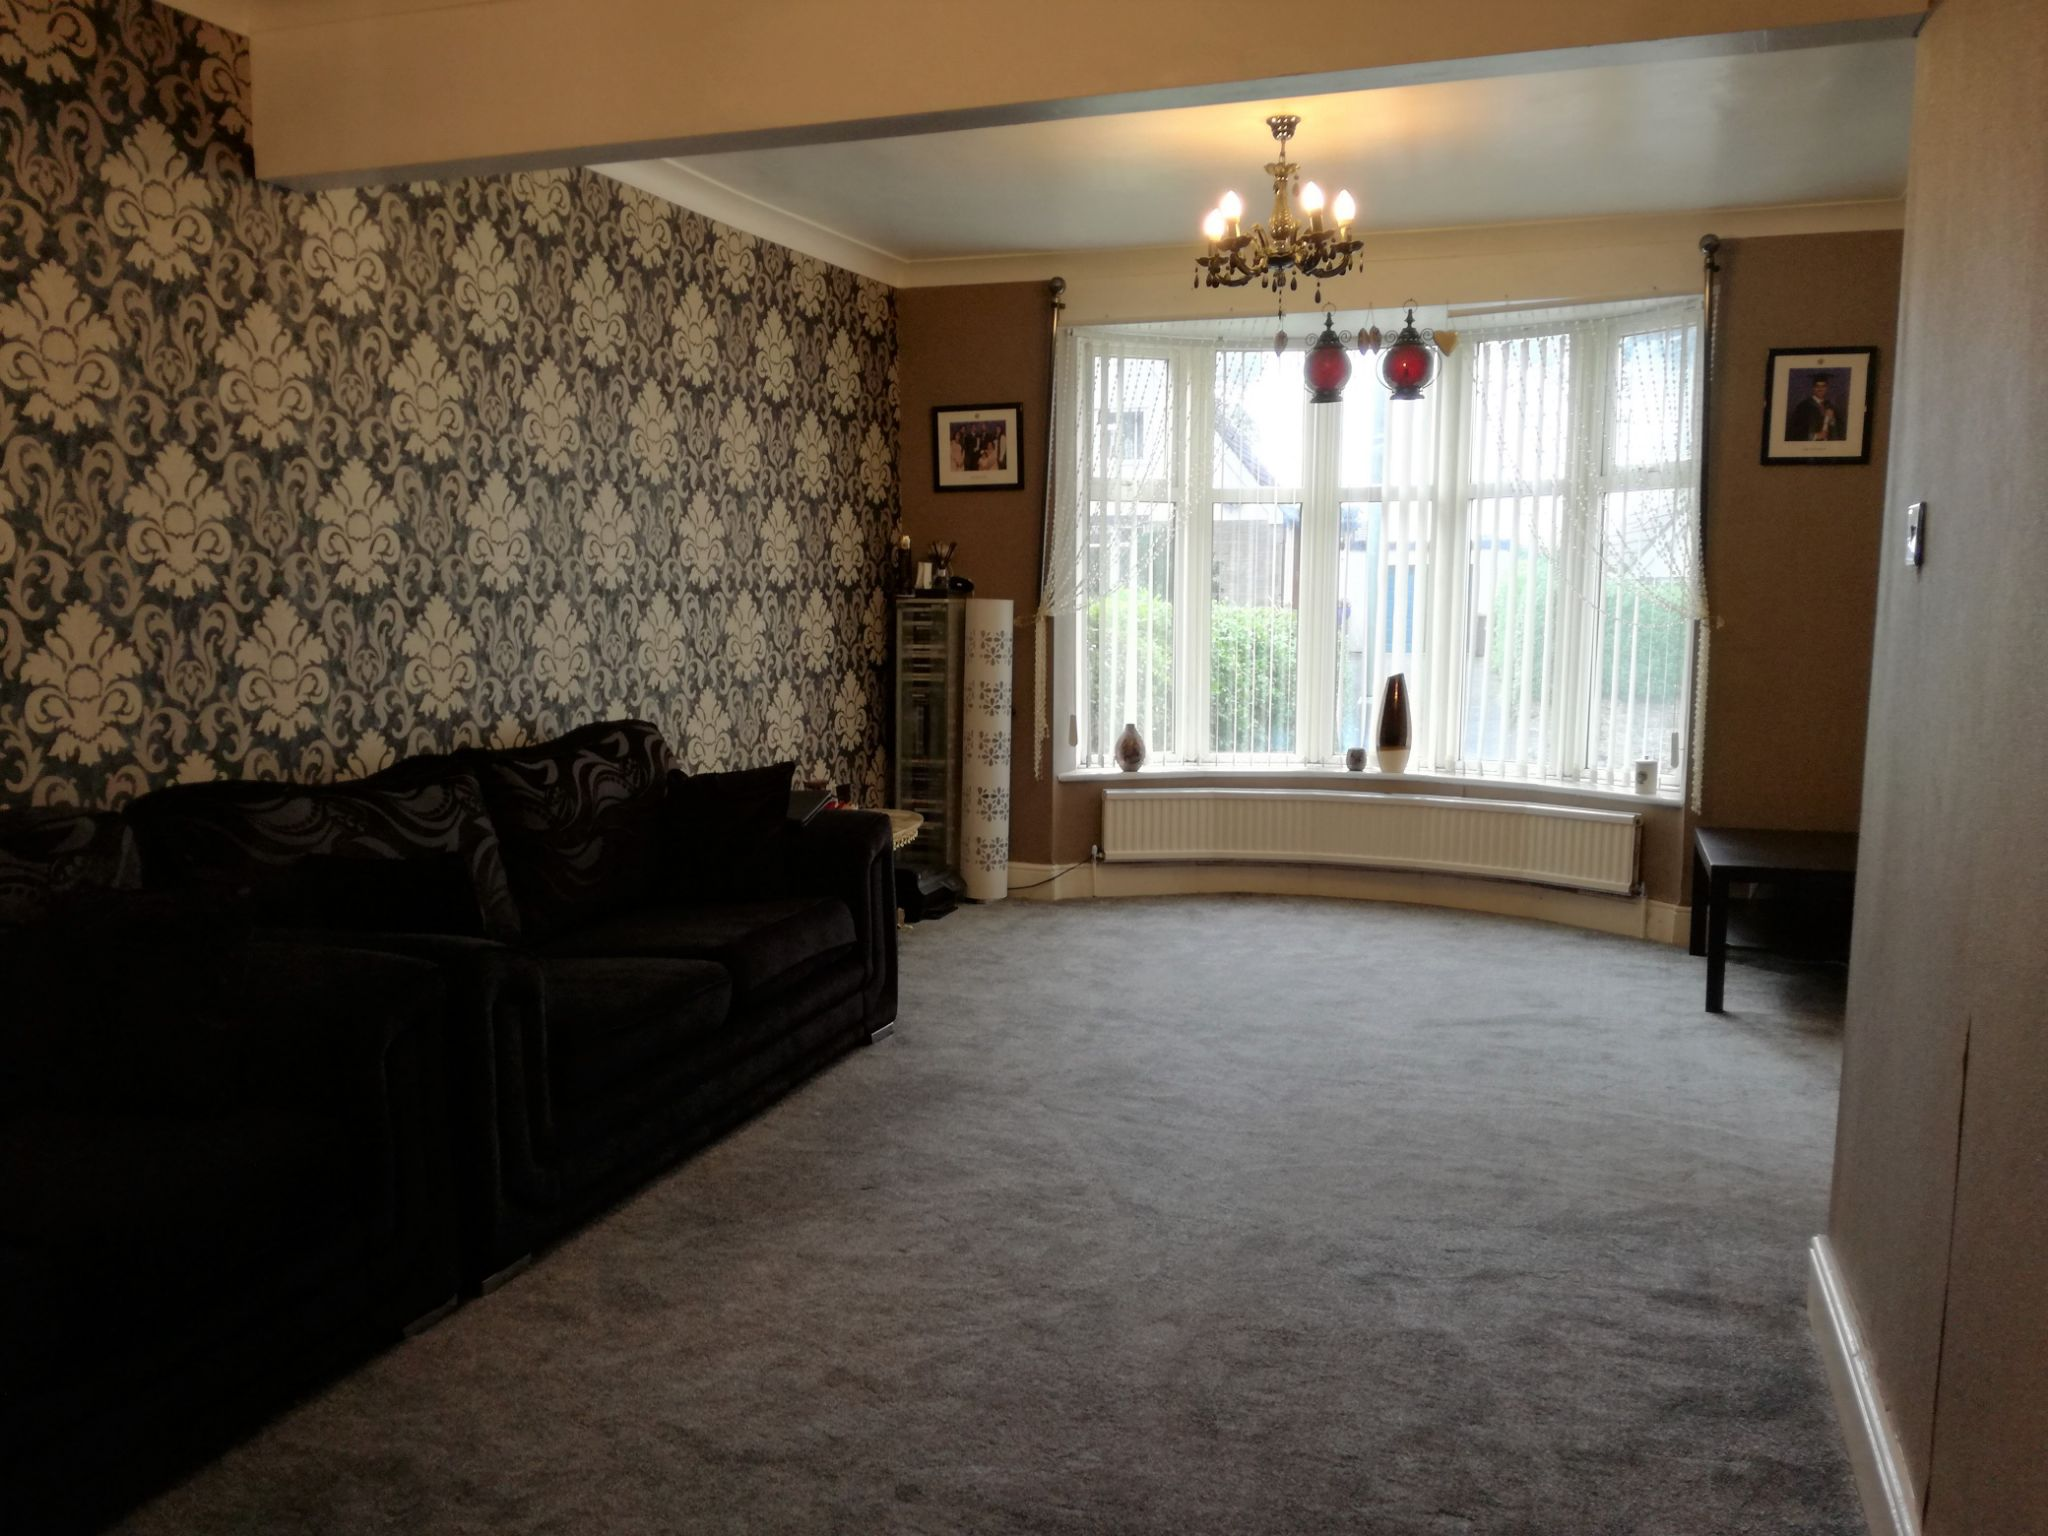 5 Bedroom Semi-detached House For Sale - Photograph 4